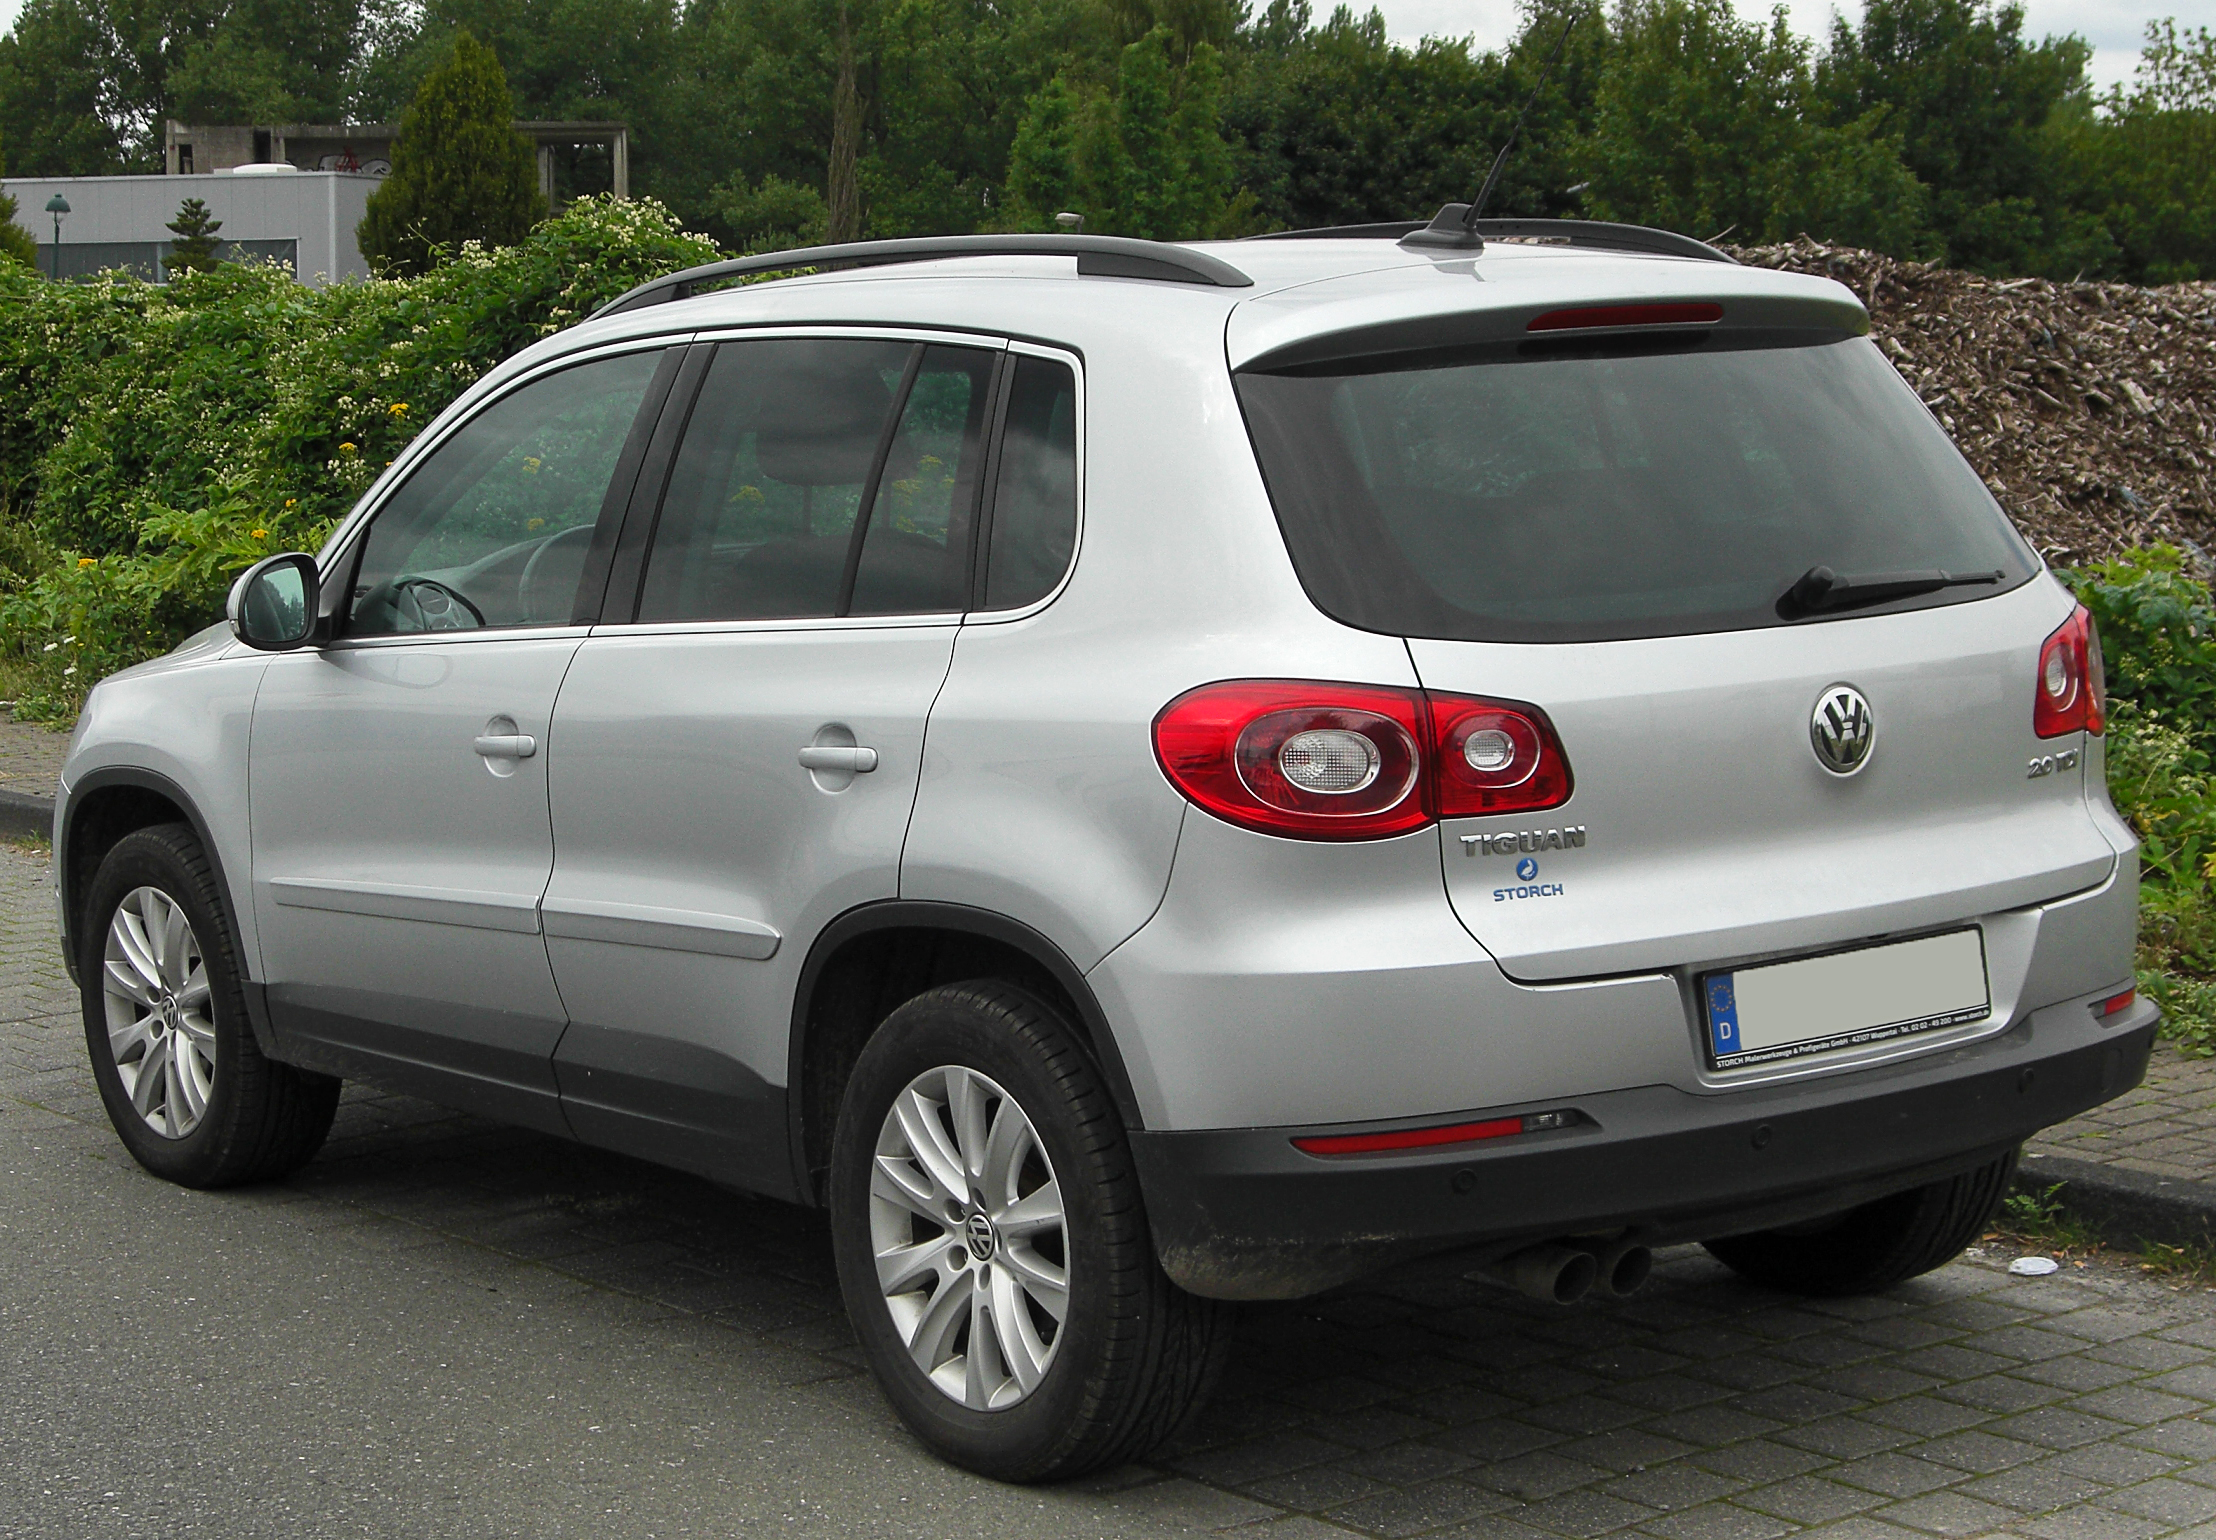 file vw tiguan 2 0 tdi rear wikimedia commons. Black Bedroom Furniture Sets. Home Design Ideas